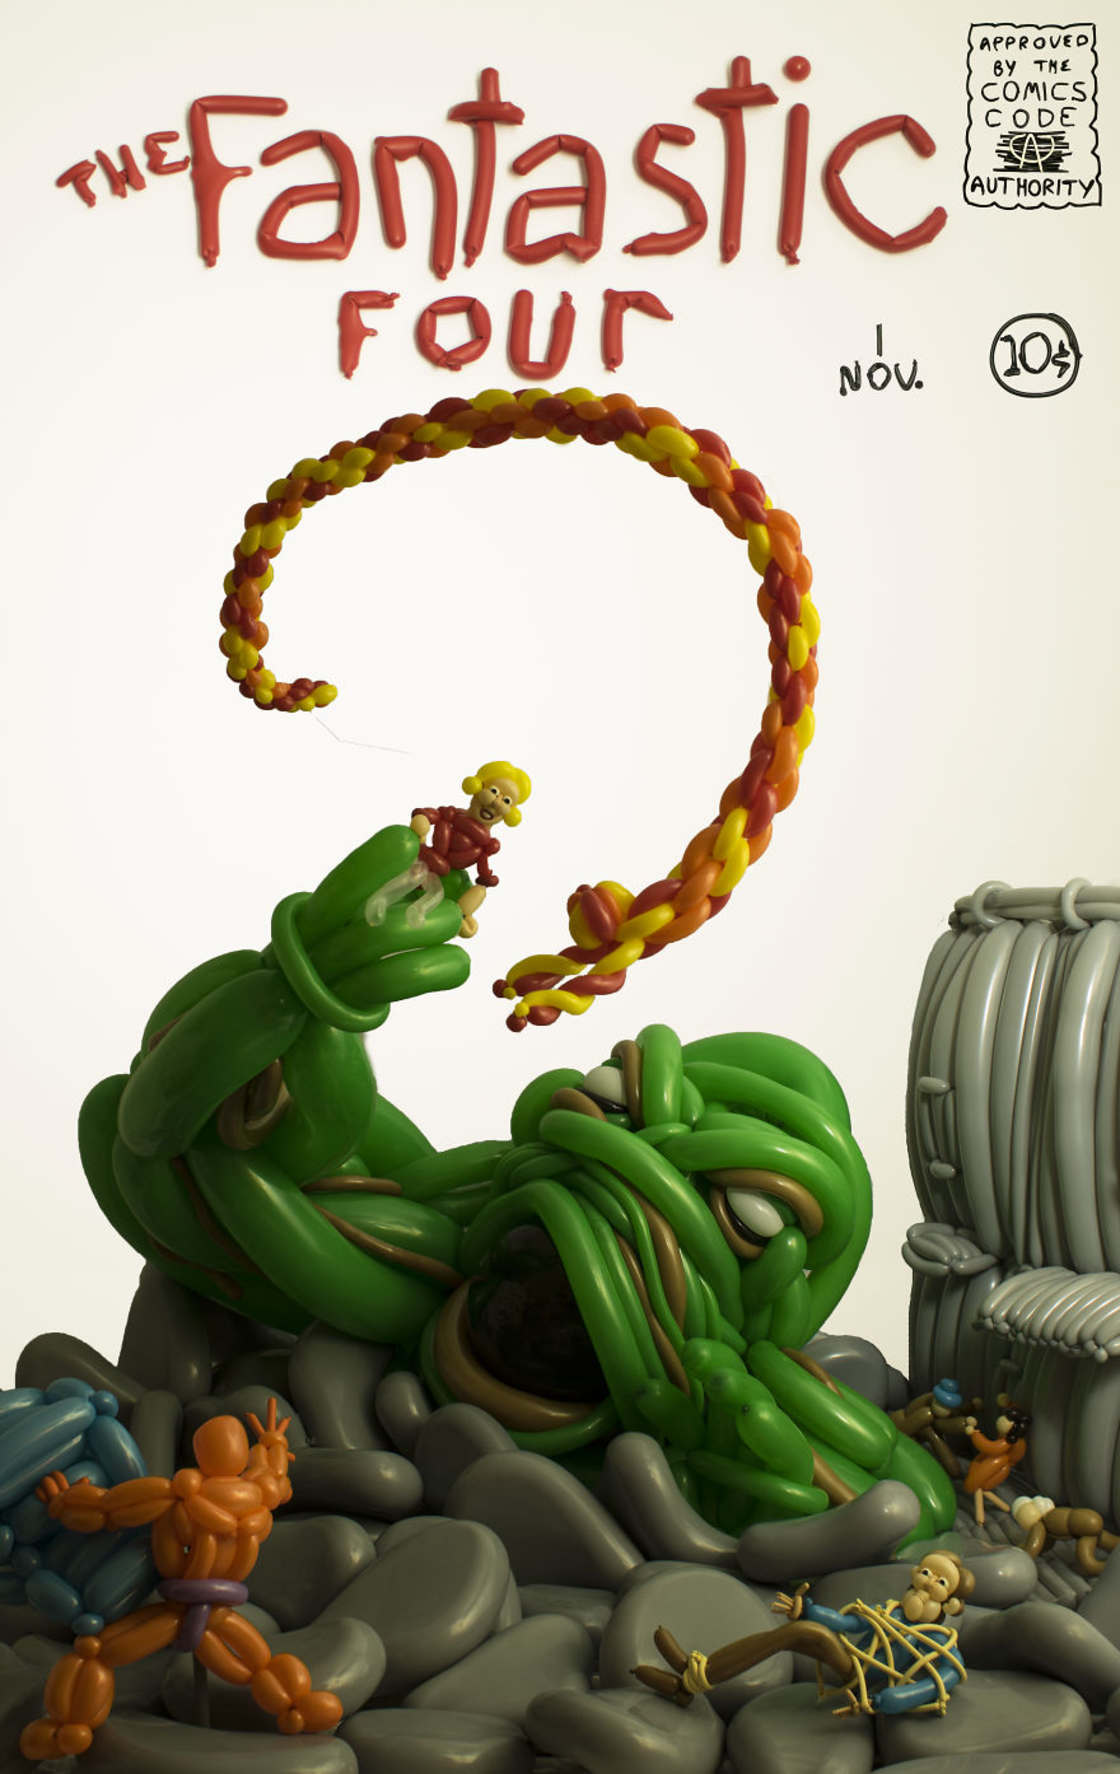 This guy recreates the covers of cult comics with dozens of balloons